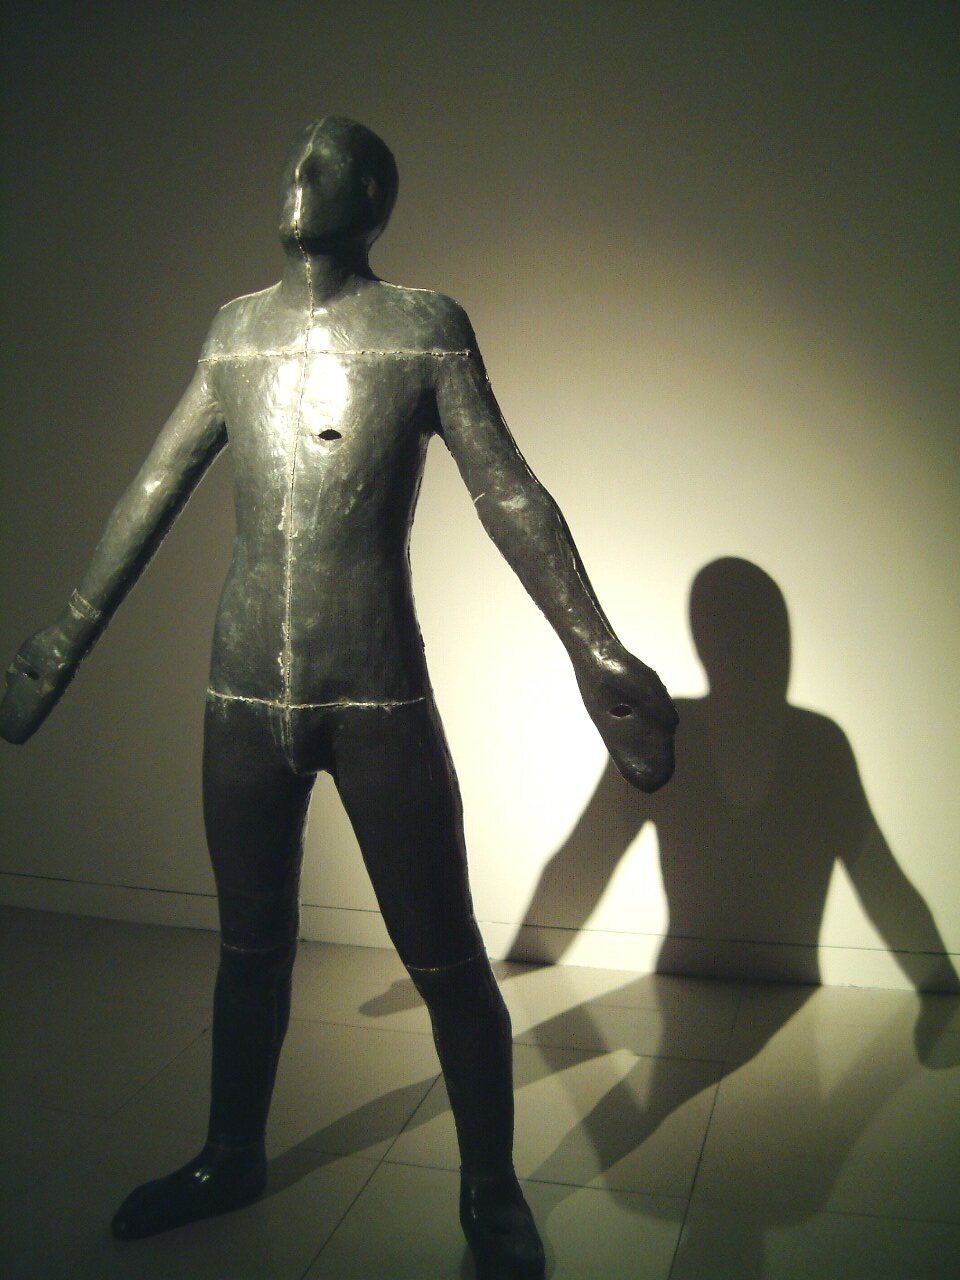 Tate Sculpture, Millennium Galleries, Sheffield